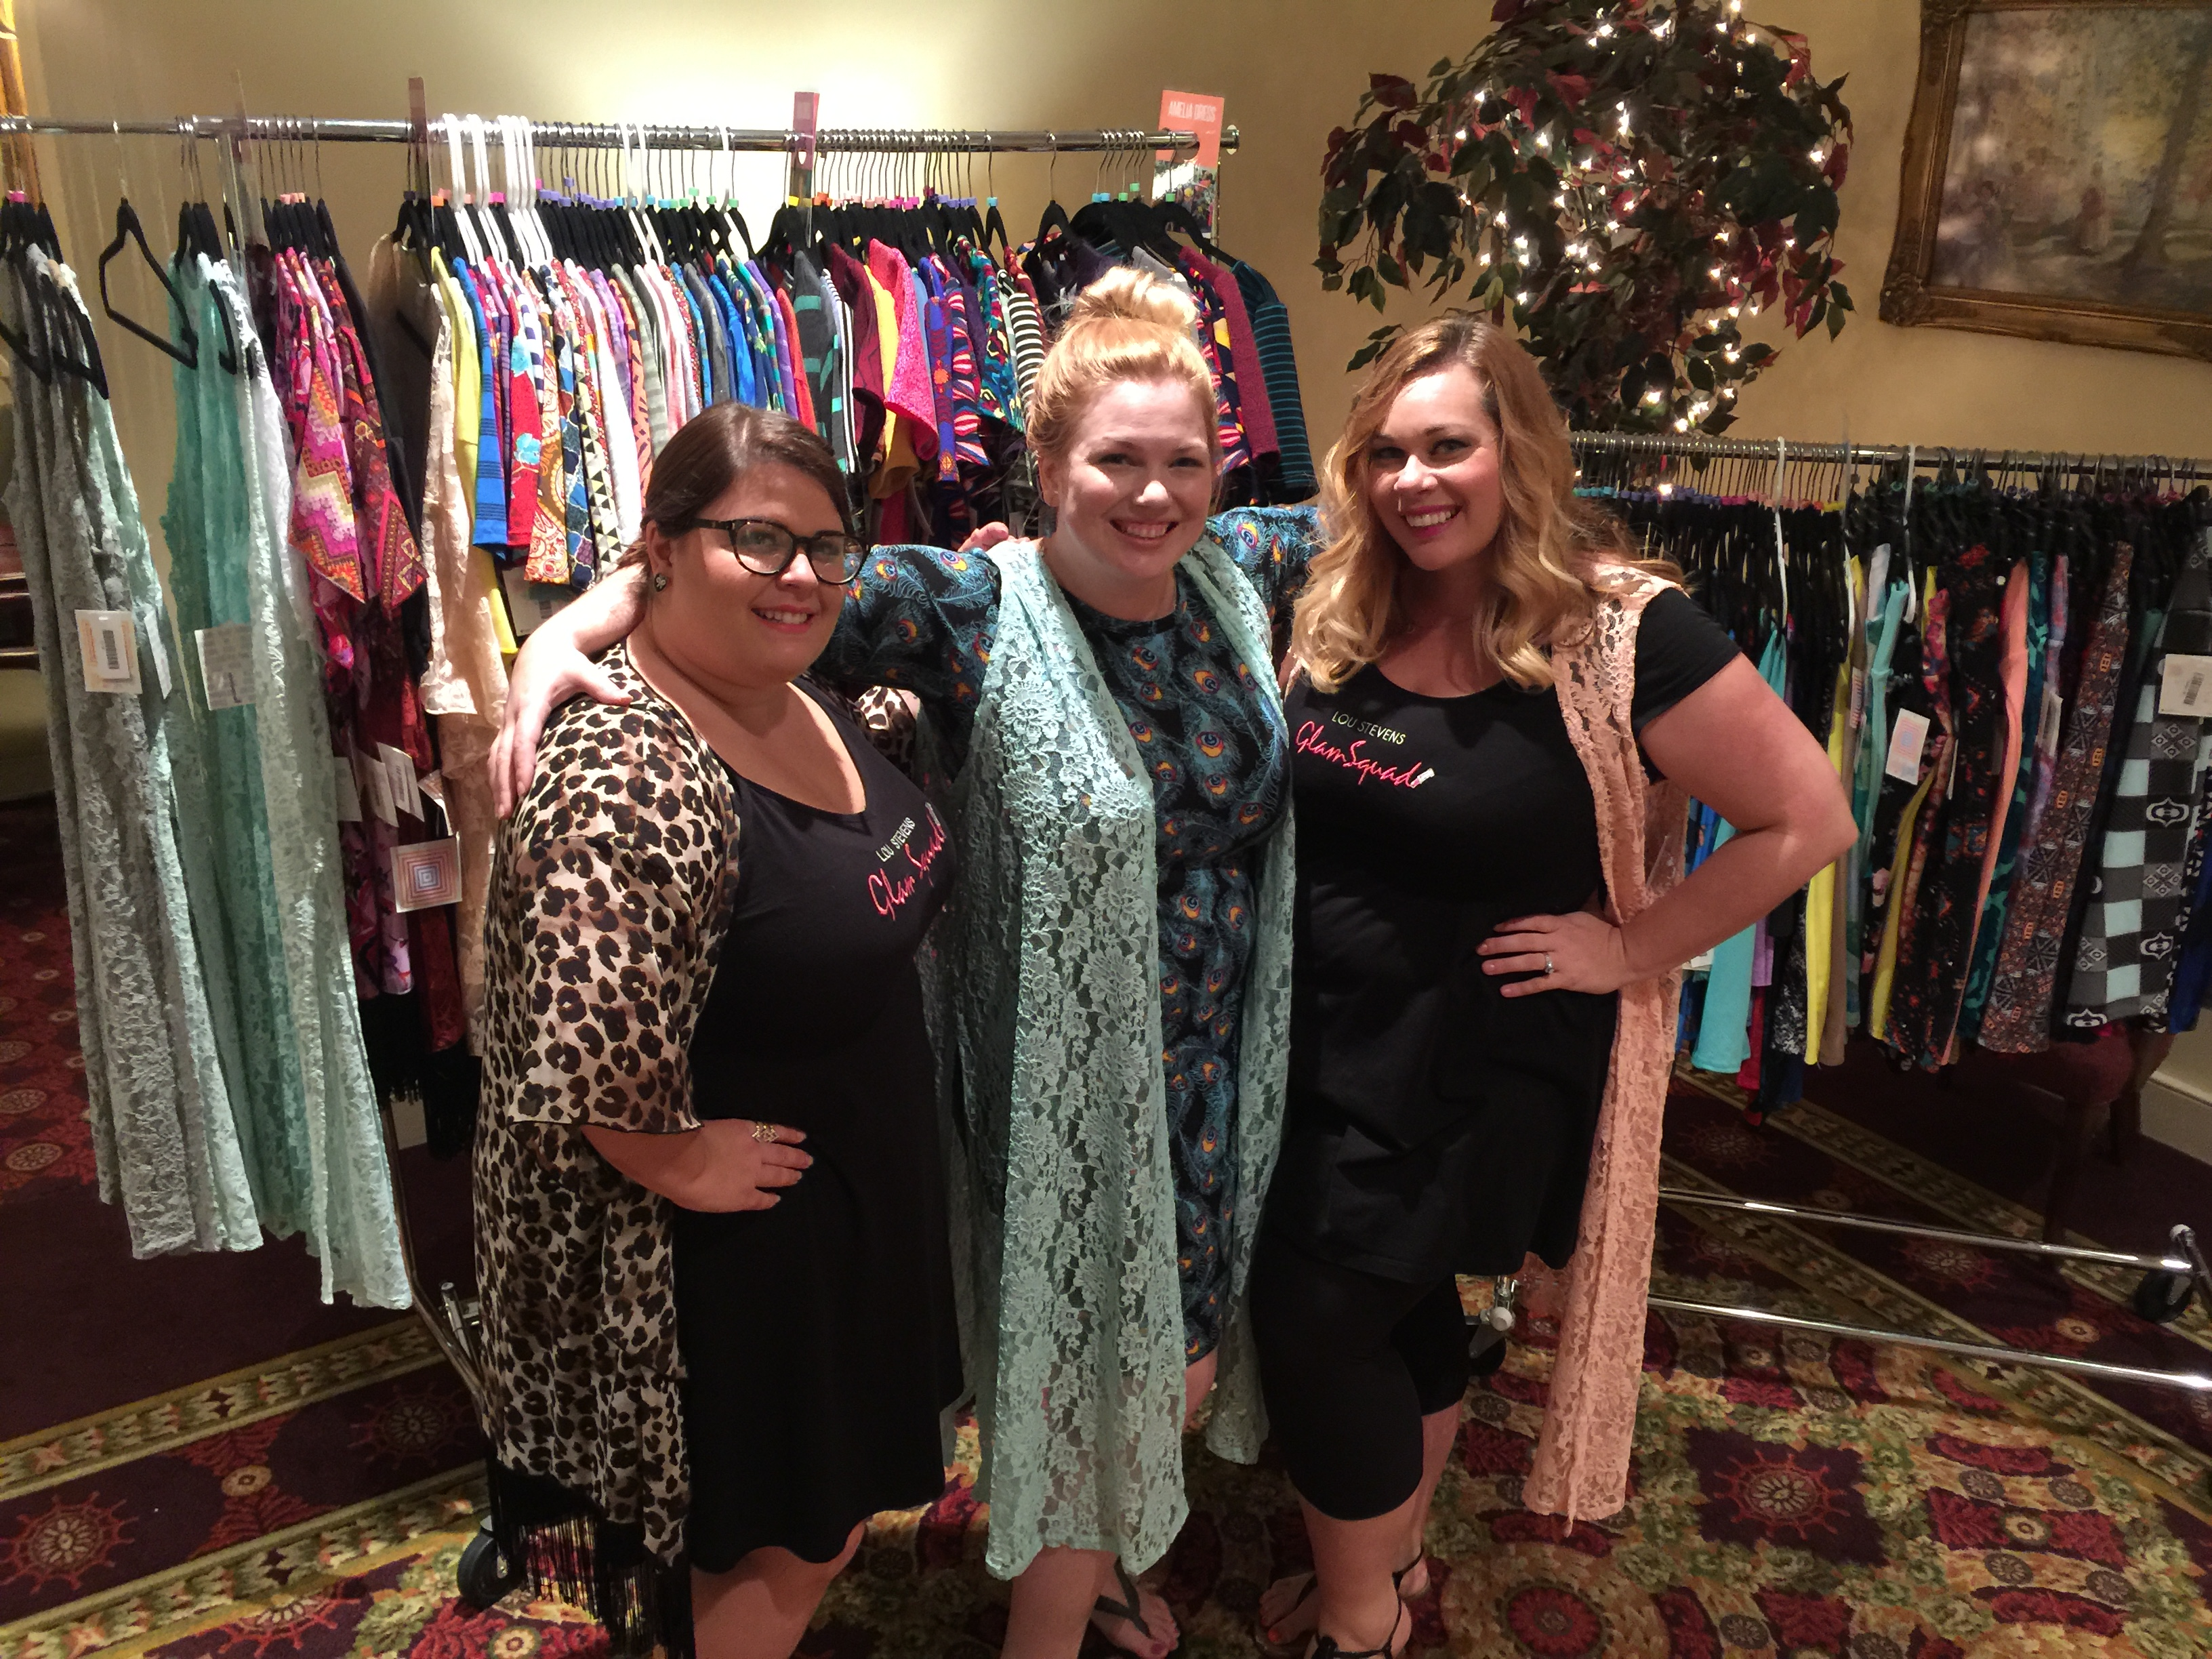 Last but certainly not least, Amanda and I most definitely purchased some Lula Roe items!